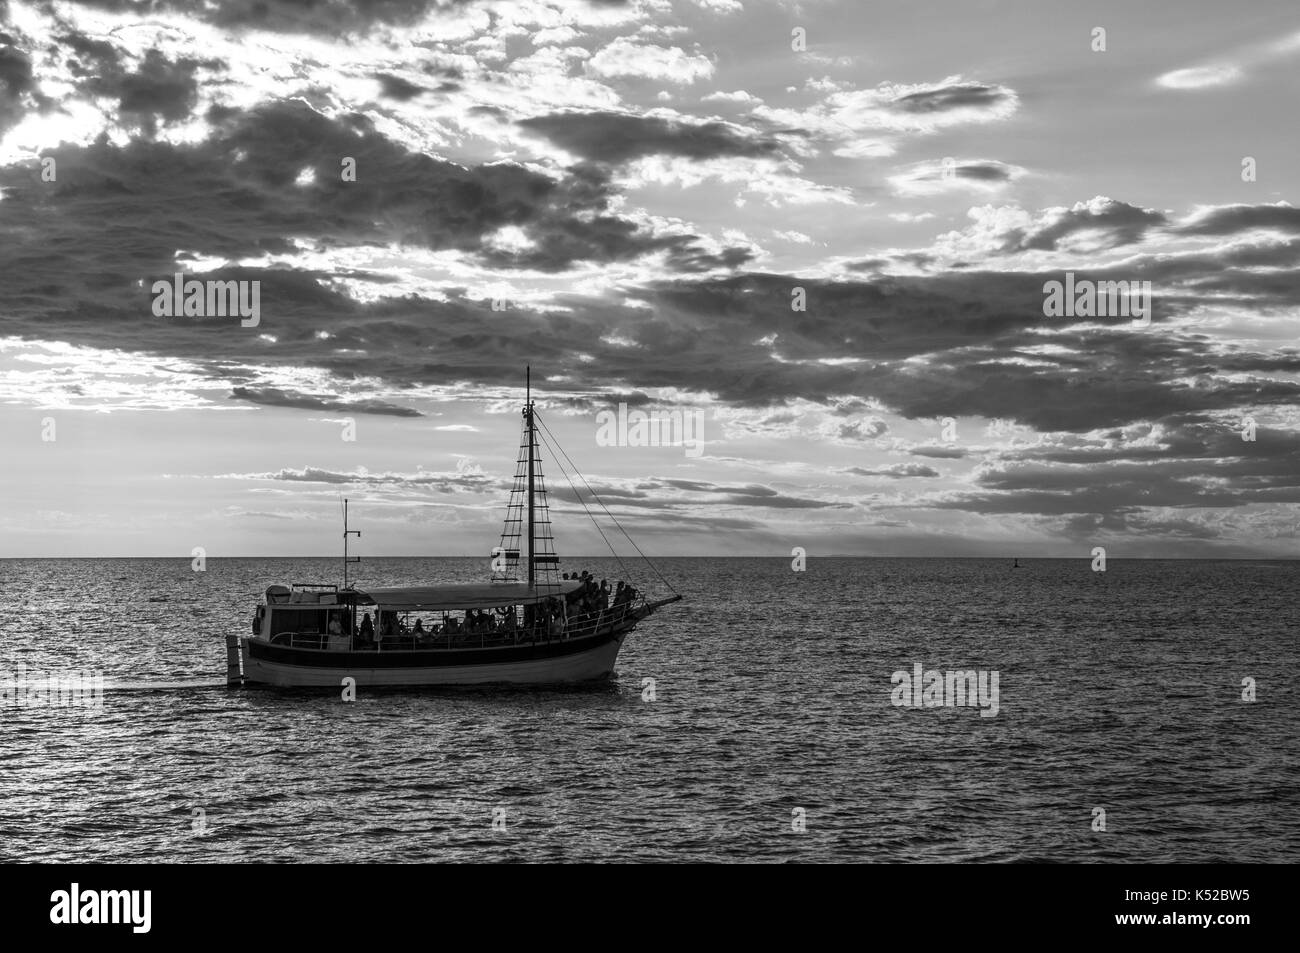 A tourist boat on the sea at sunset (desaturated) - Stock Image